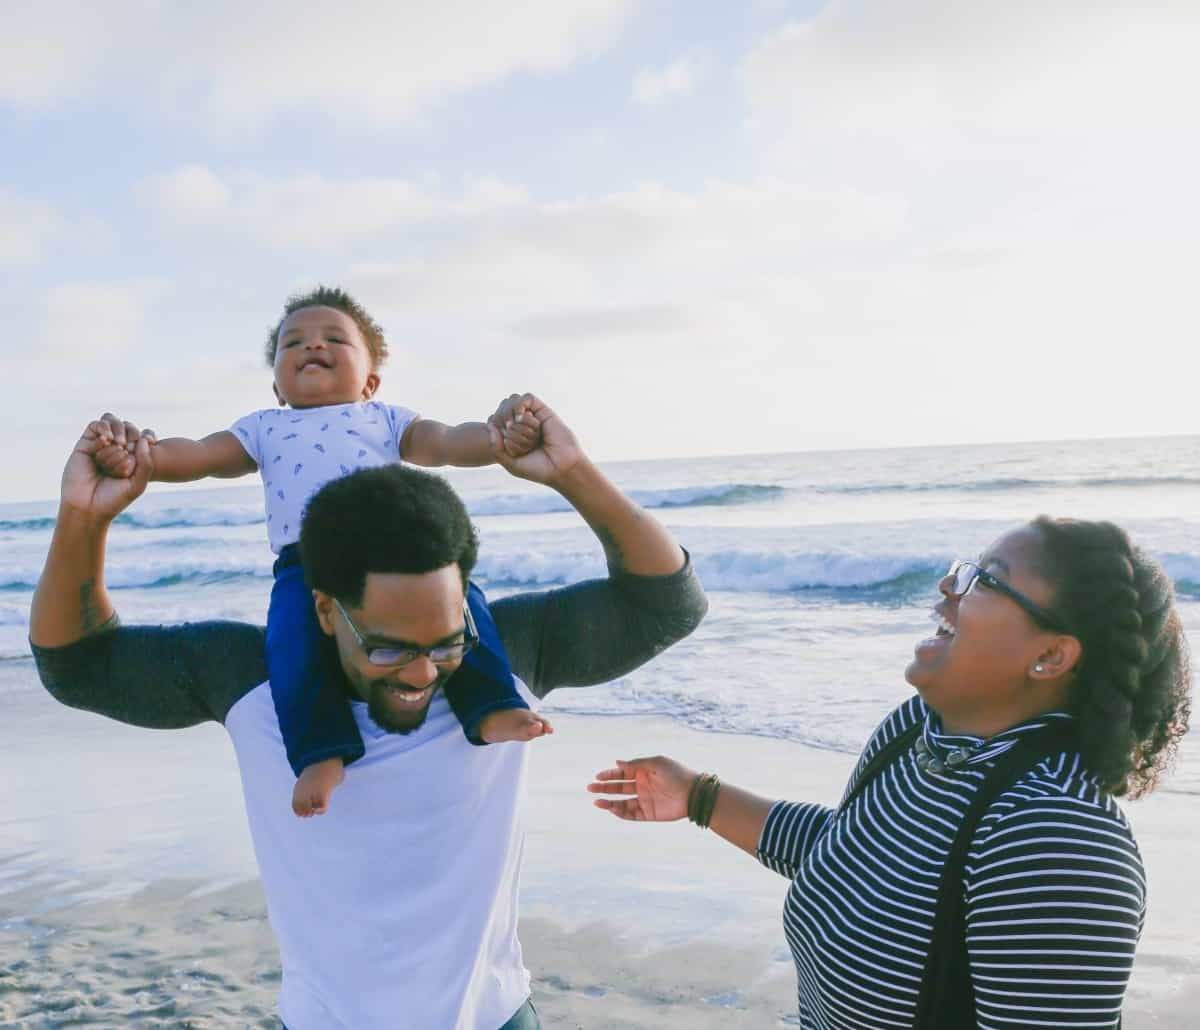 A young family is smiling while standing on the beach.